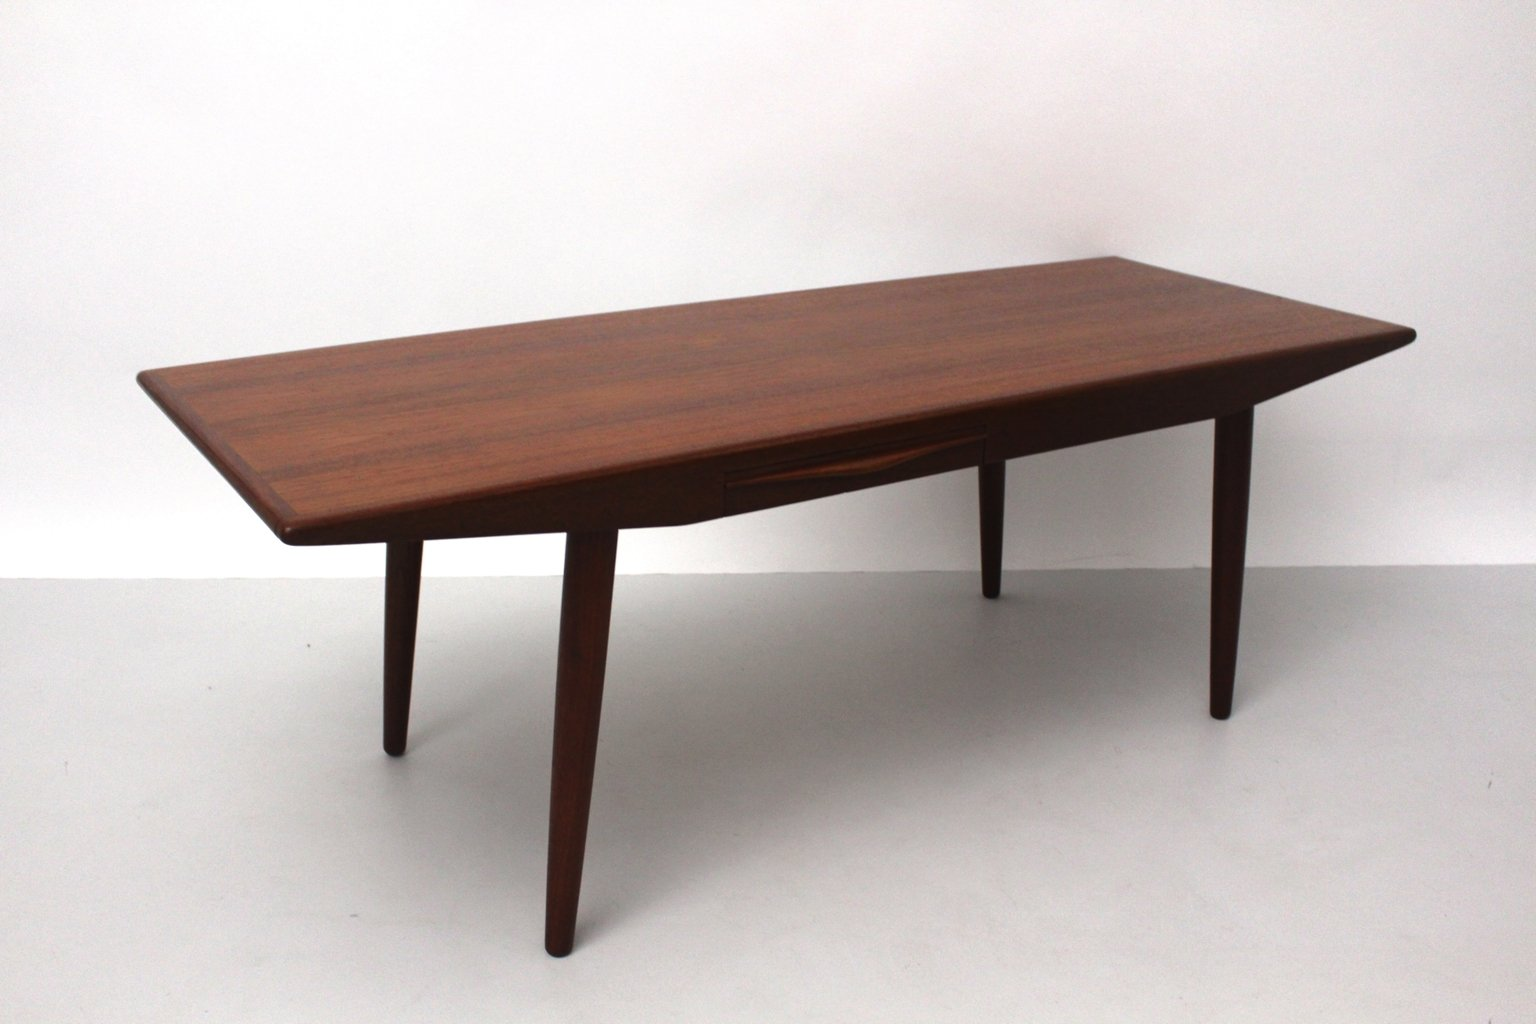 Superior Danish Teak Coffee Table With Drawers By Johannes Andersen, 1960s